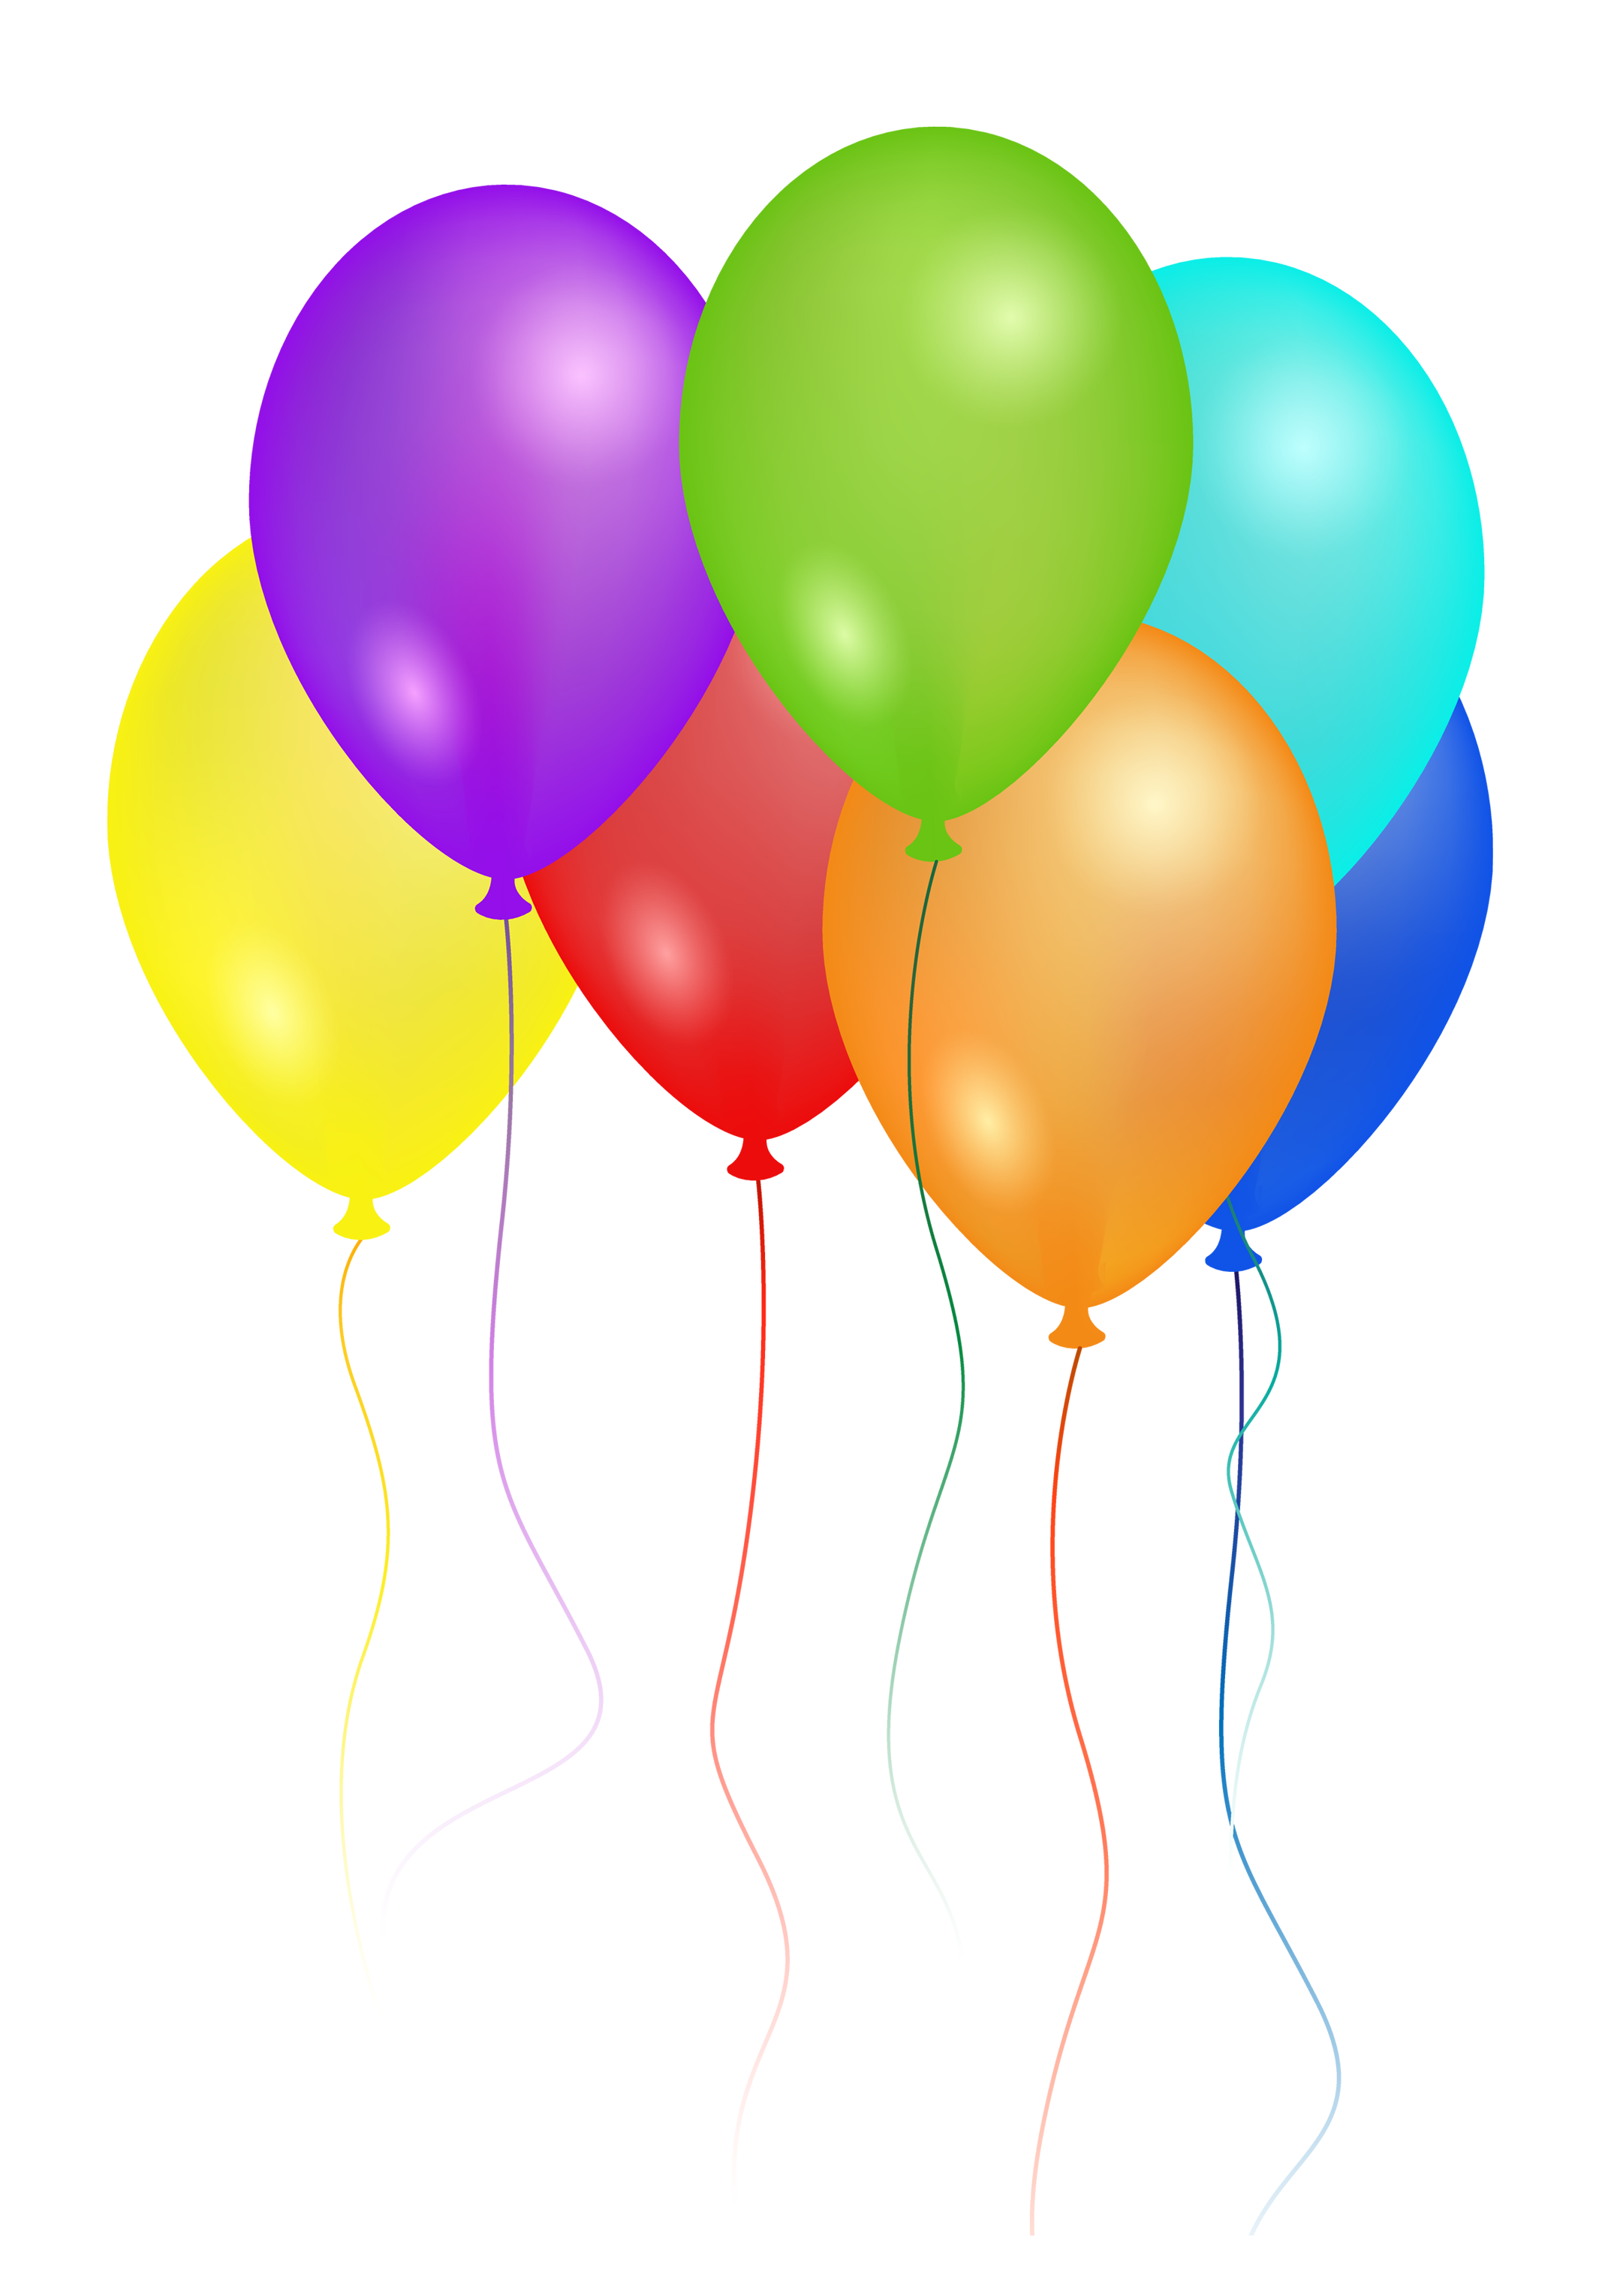 Colorful balloons free transparent. Ballon clipart birthday accessory svg download